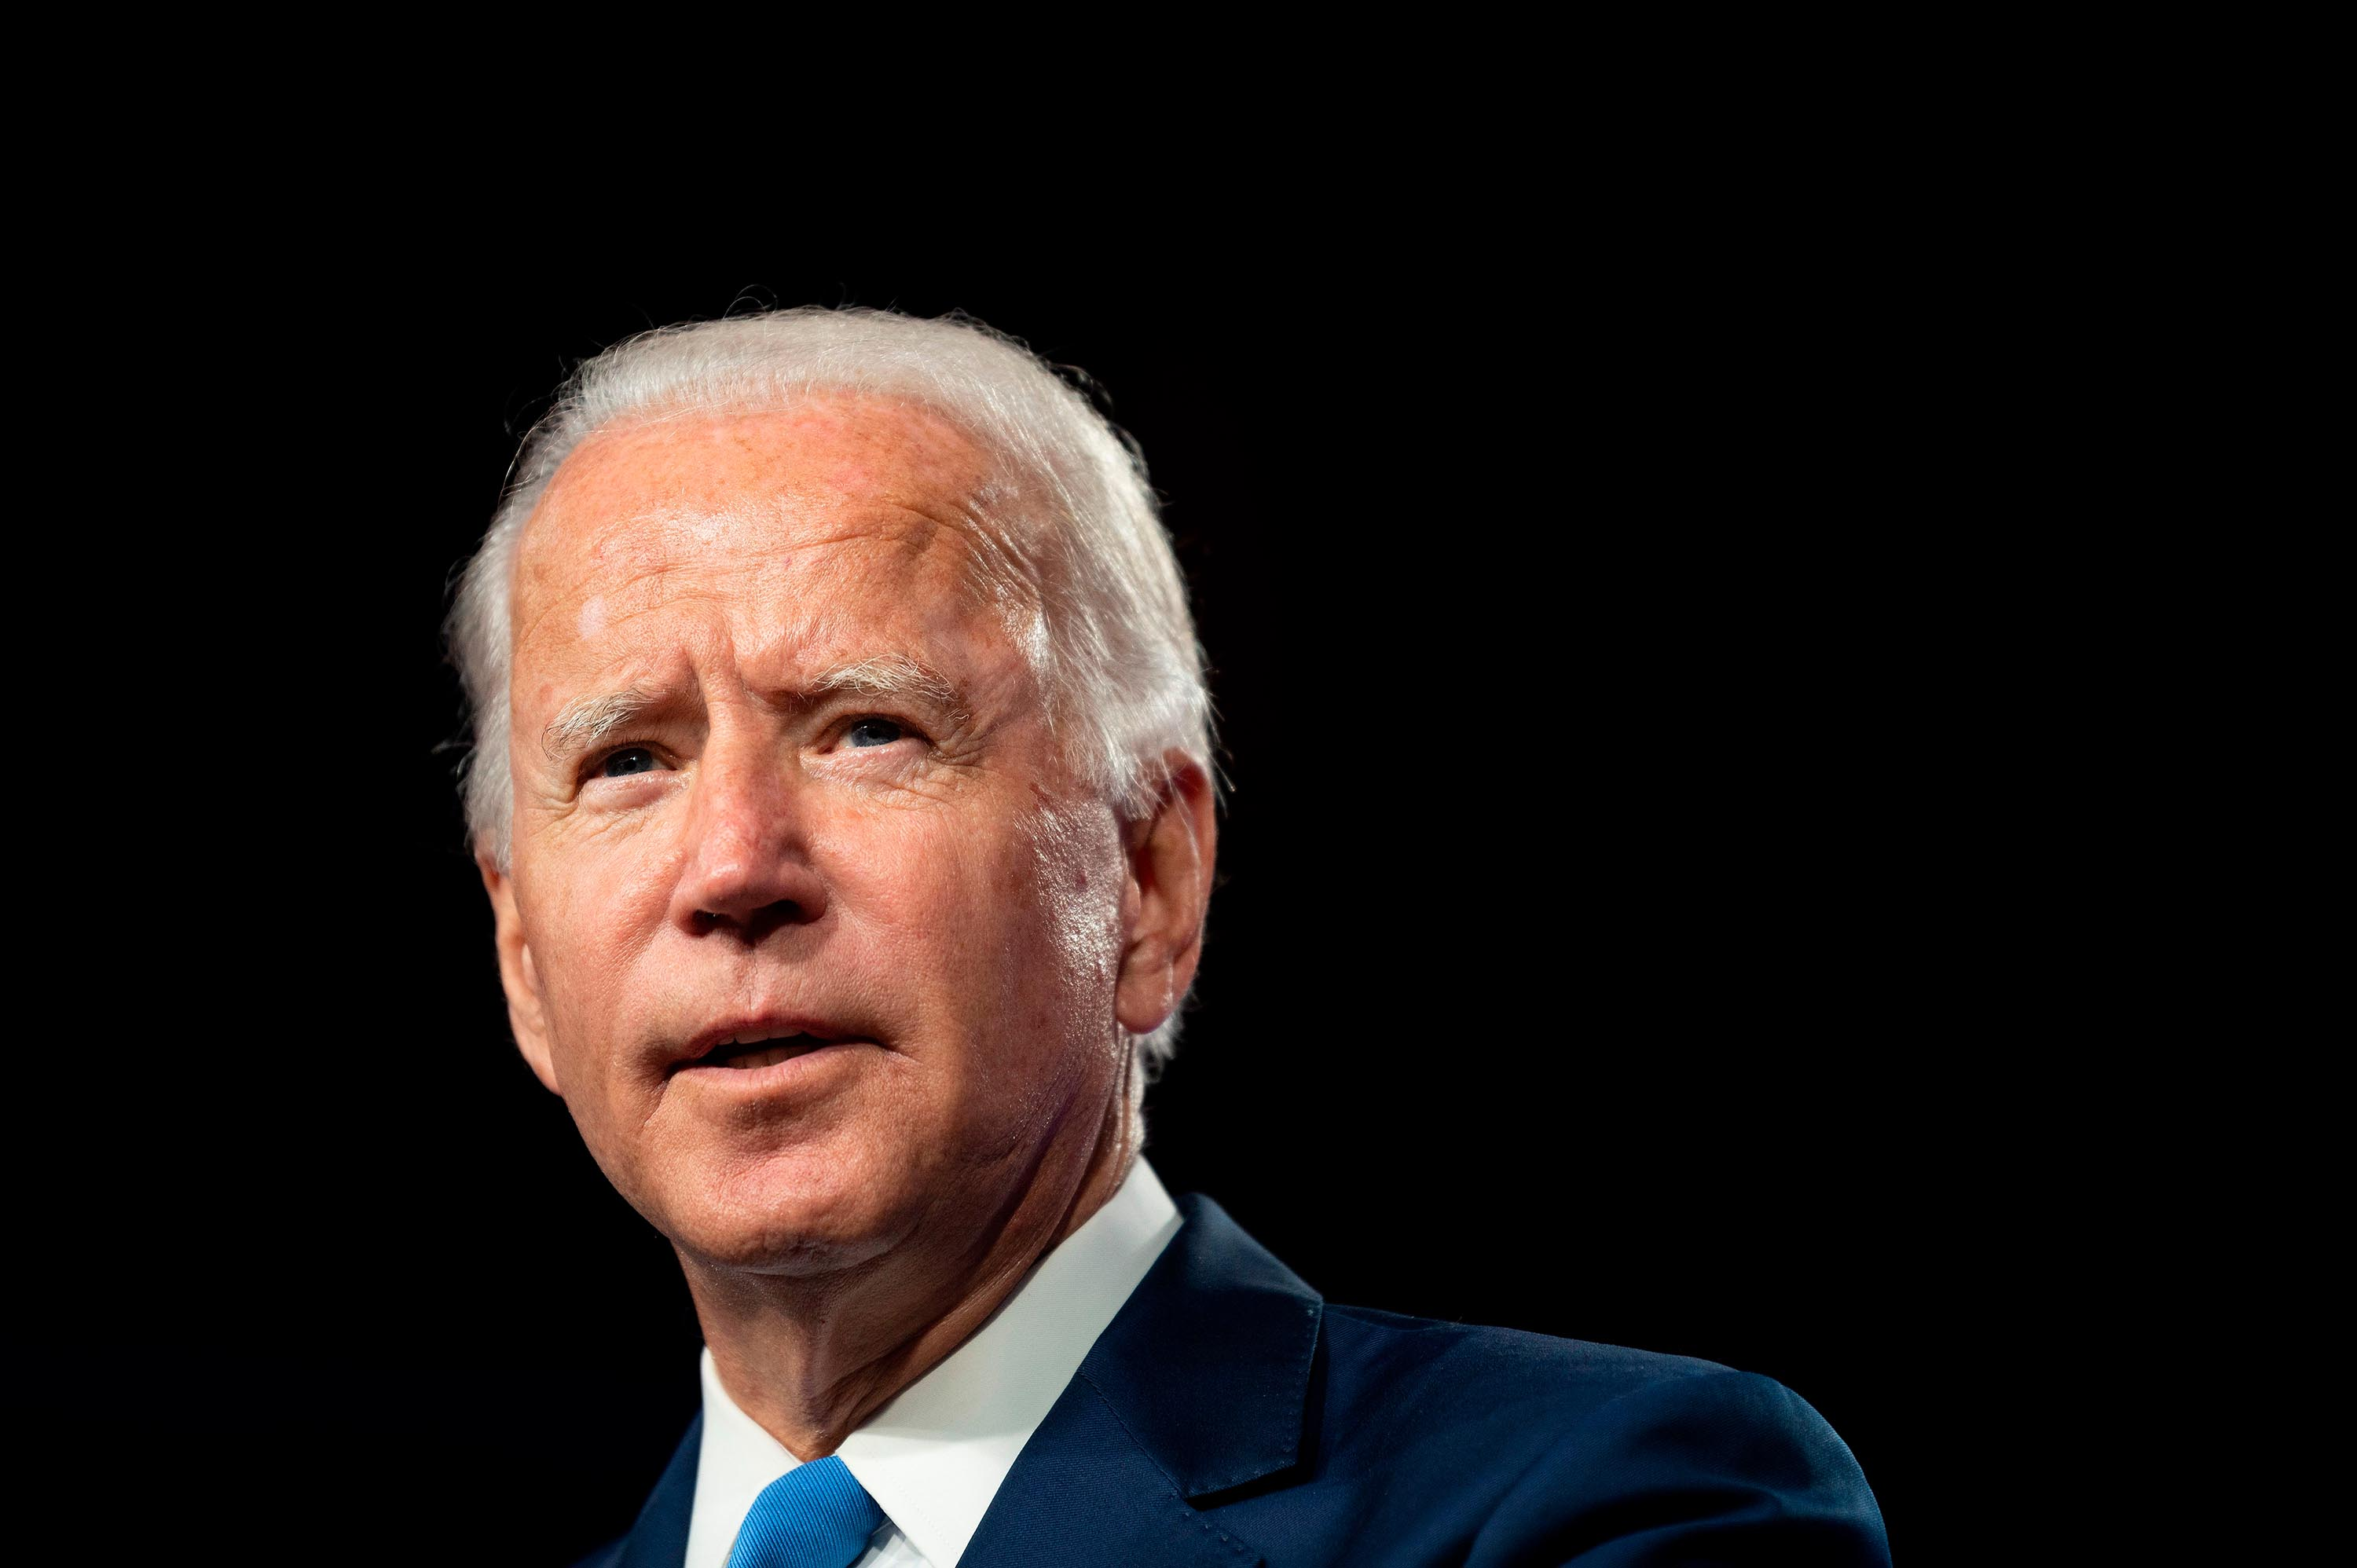 Ohio Democrats think Biden can win the state and urge campaign to go all in